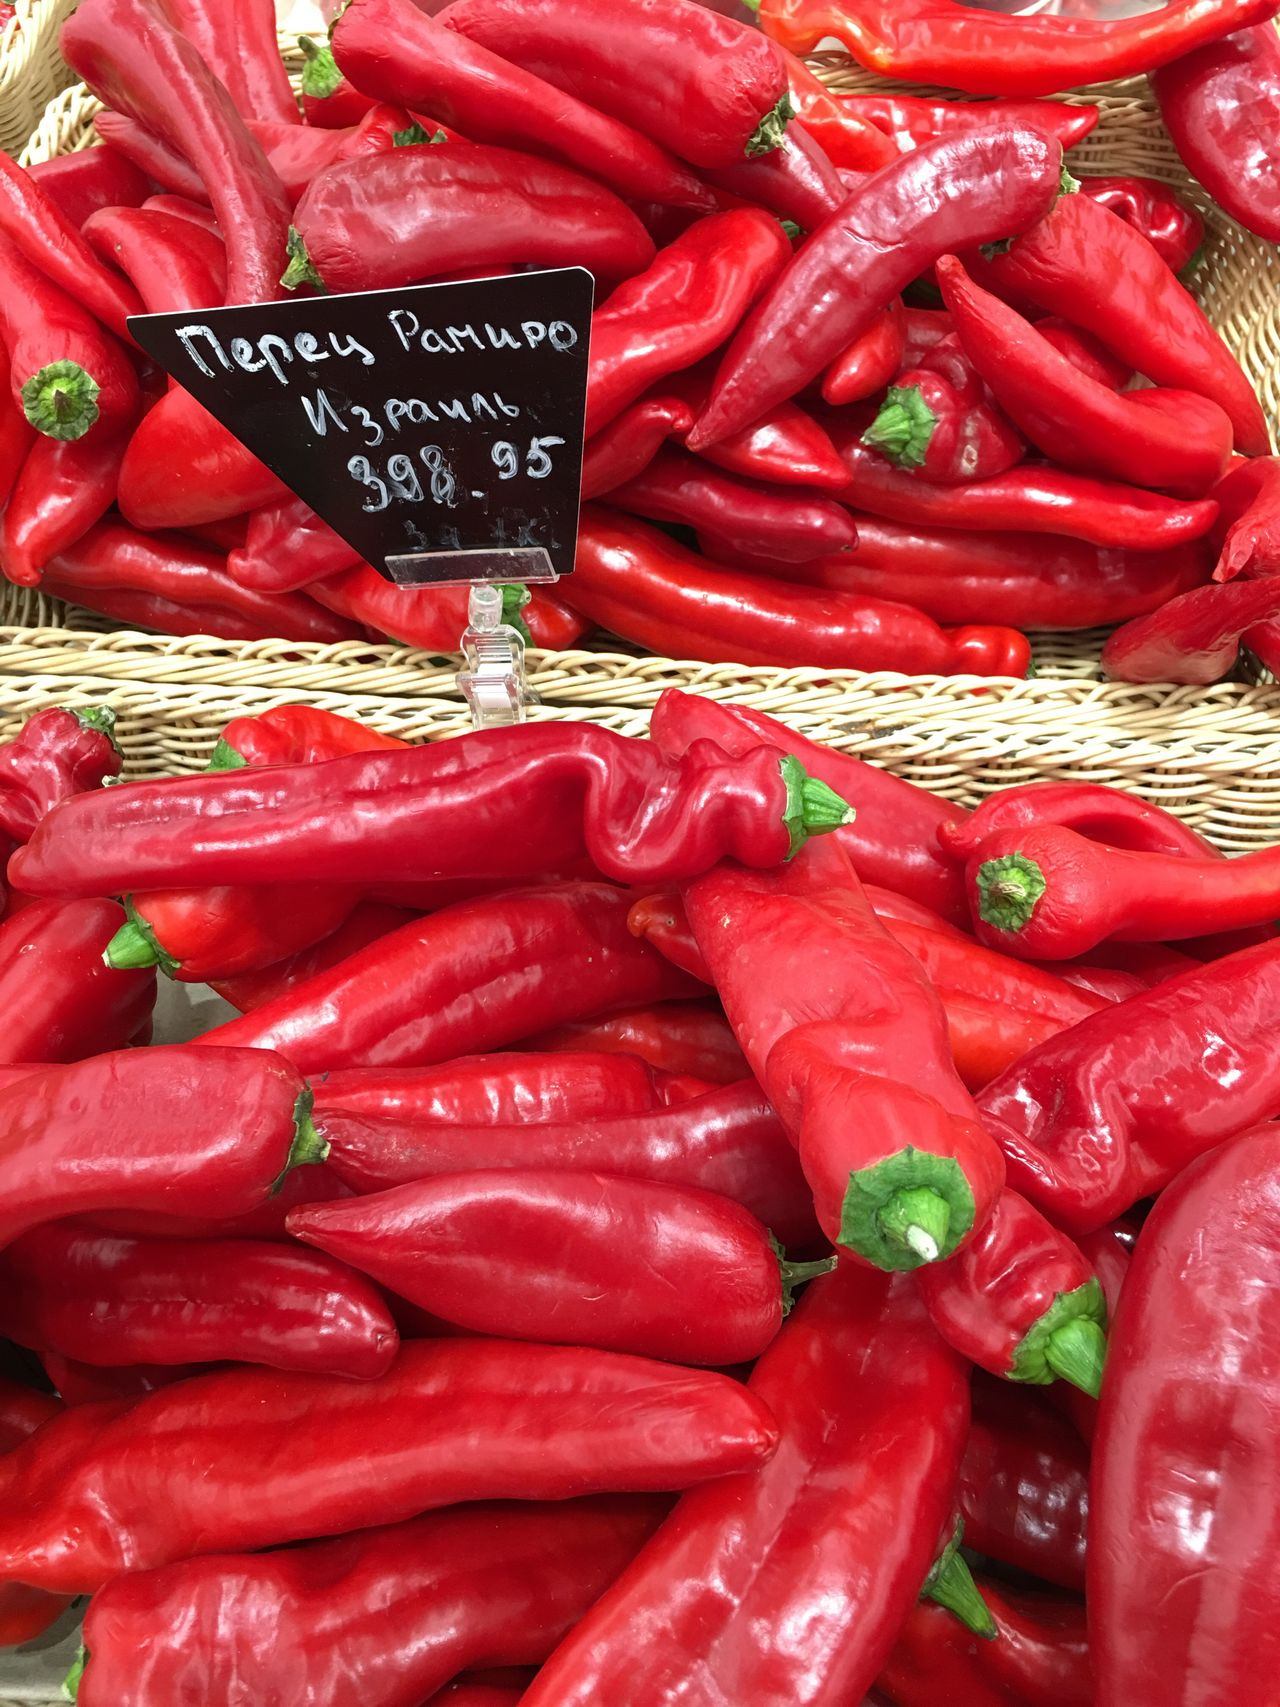 Freshness Food And Drink Backgrounds Large Group Of Objects Full Frame Vegetable For Sale Red Chili Pepper Abundance Variation Food Market Spice Healthy Eating Retail  Choice Chili Pepper Market Stall No People Red Bell Pepper